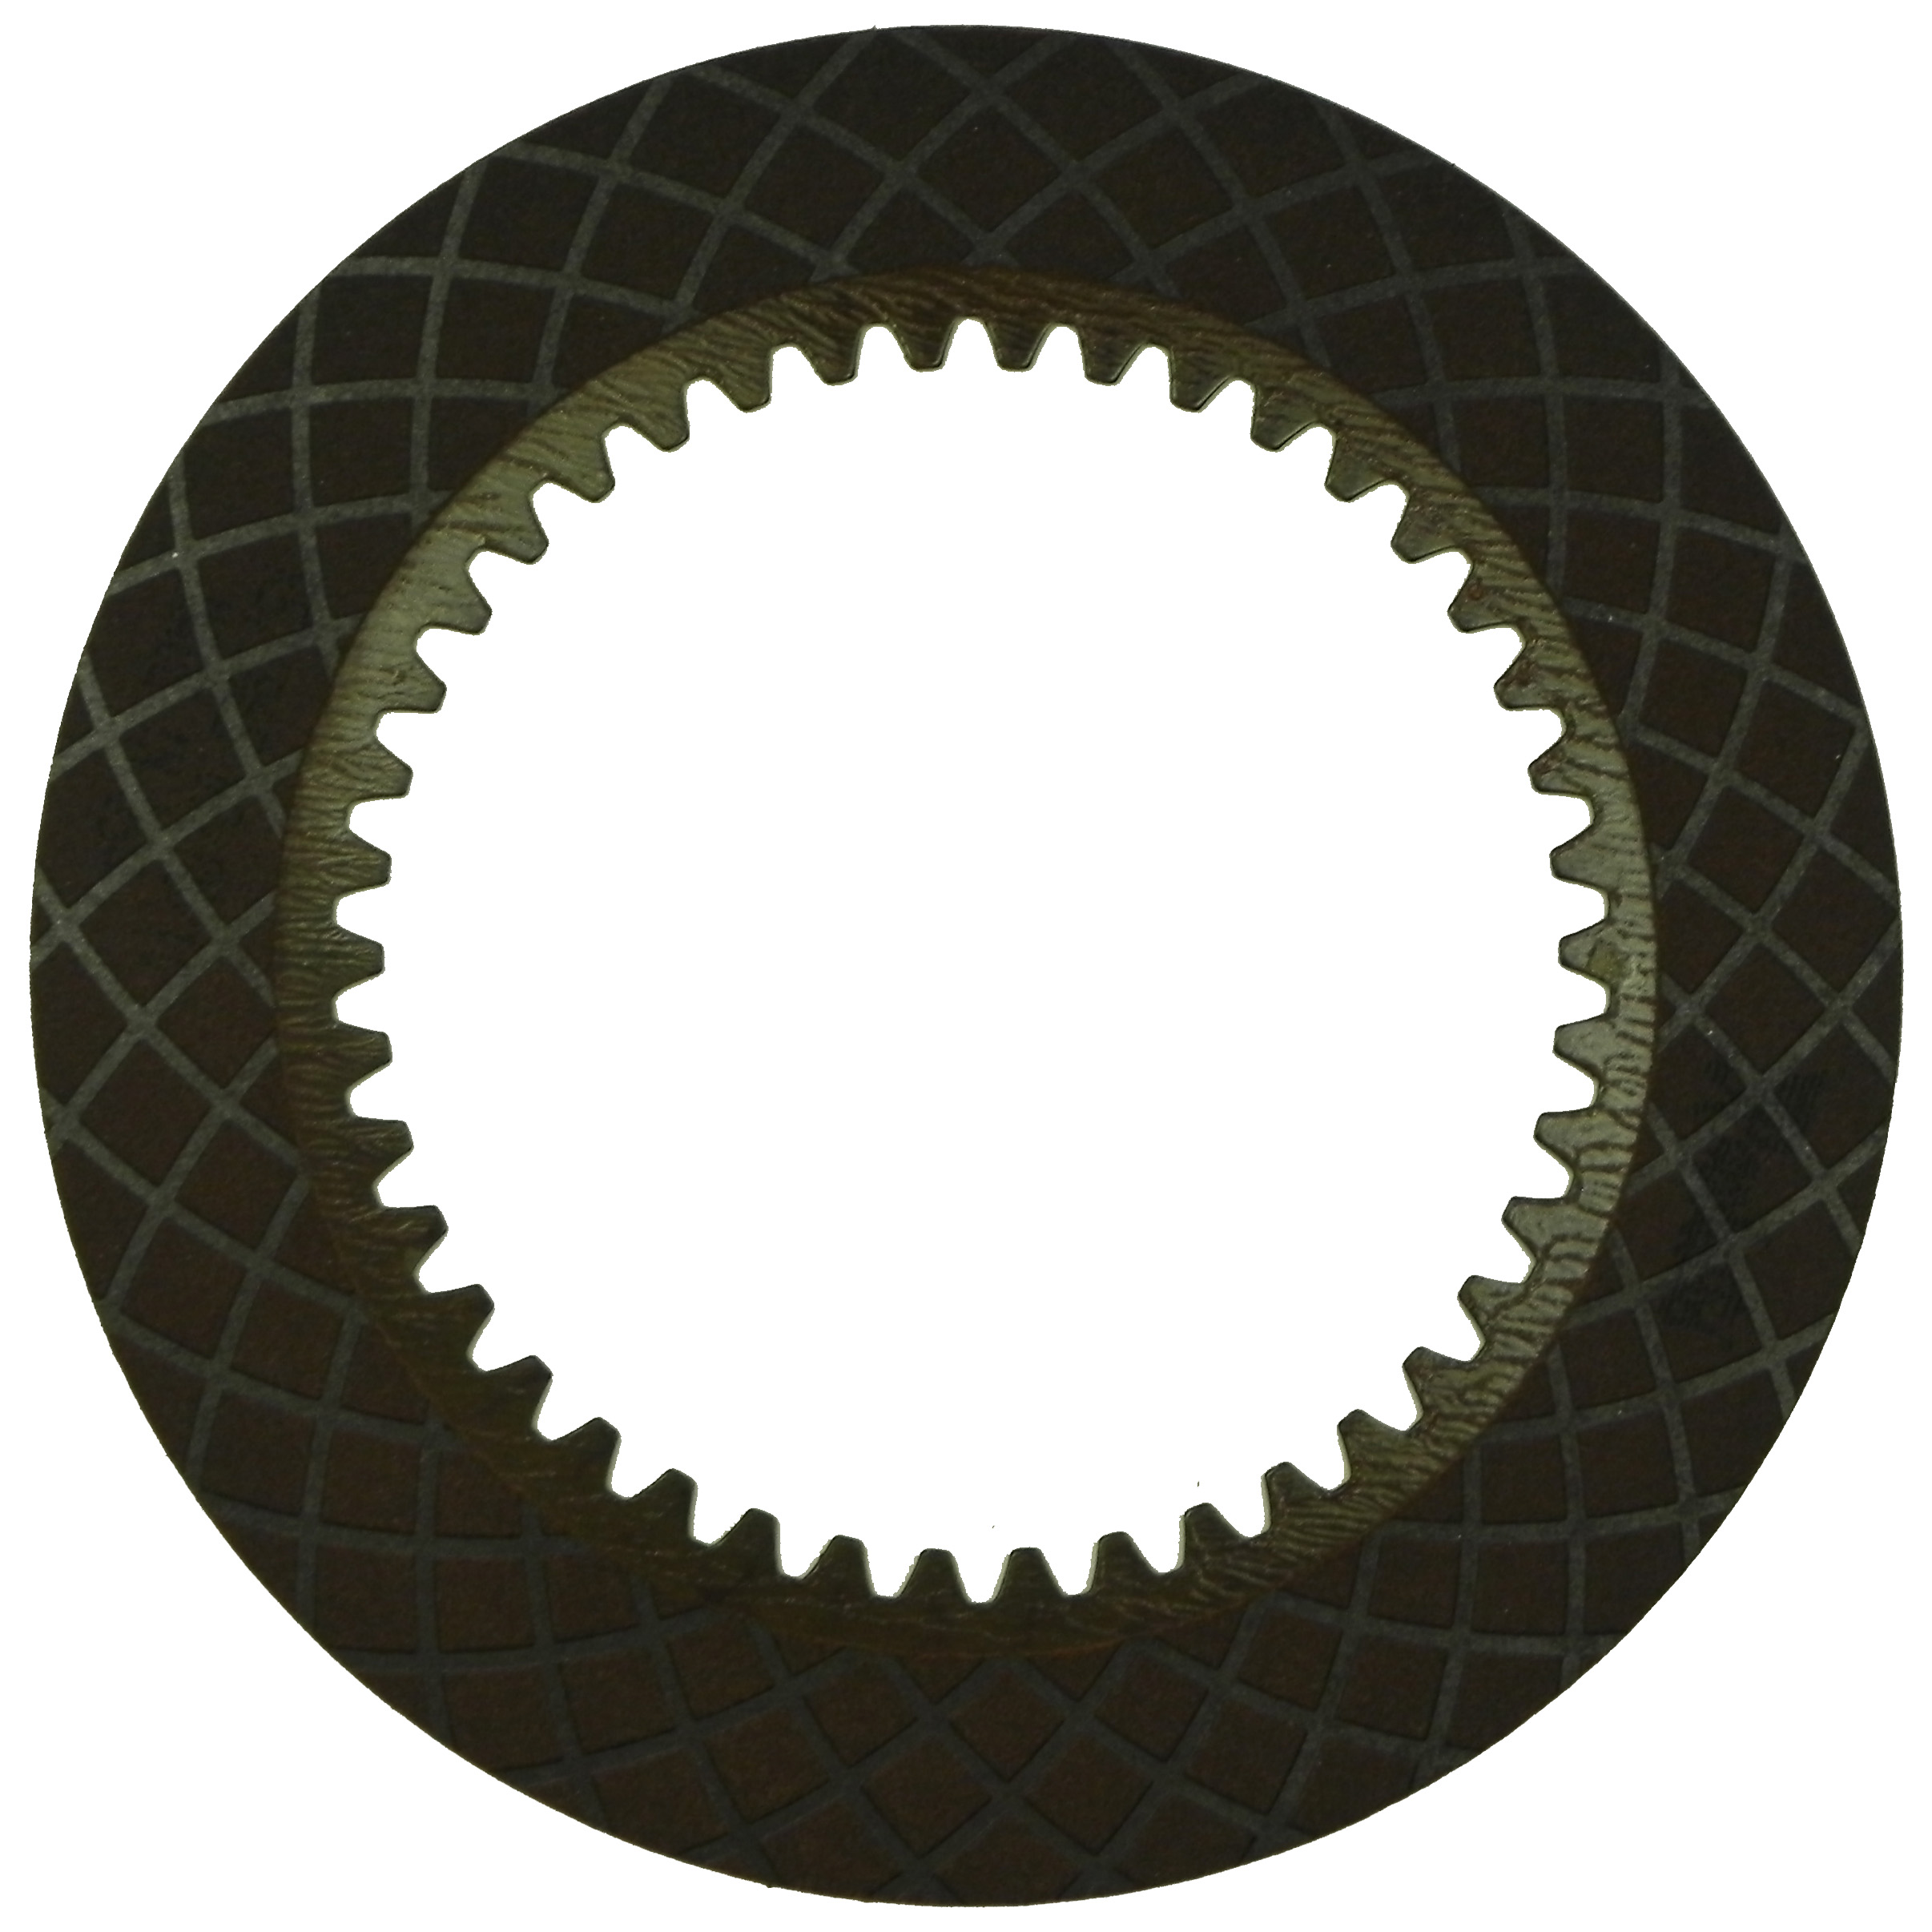 R571865 | 2005-2008 Friction Clutch Plate GPX 3rd GPX